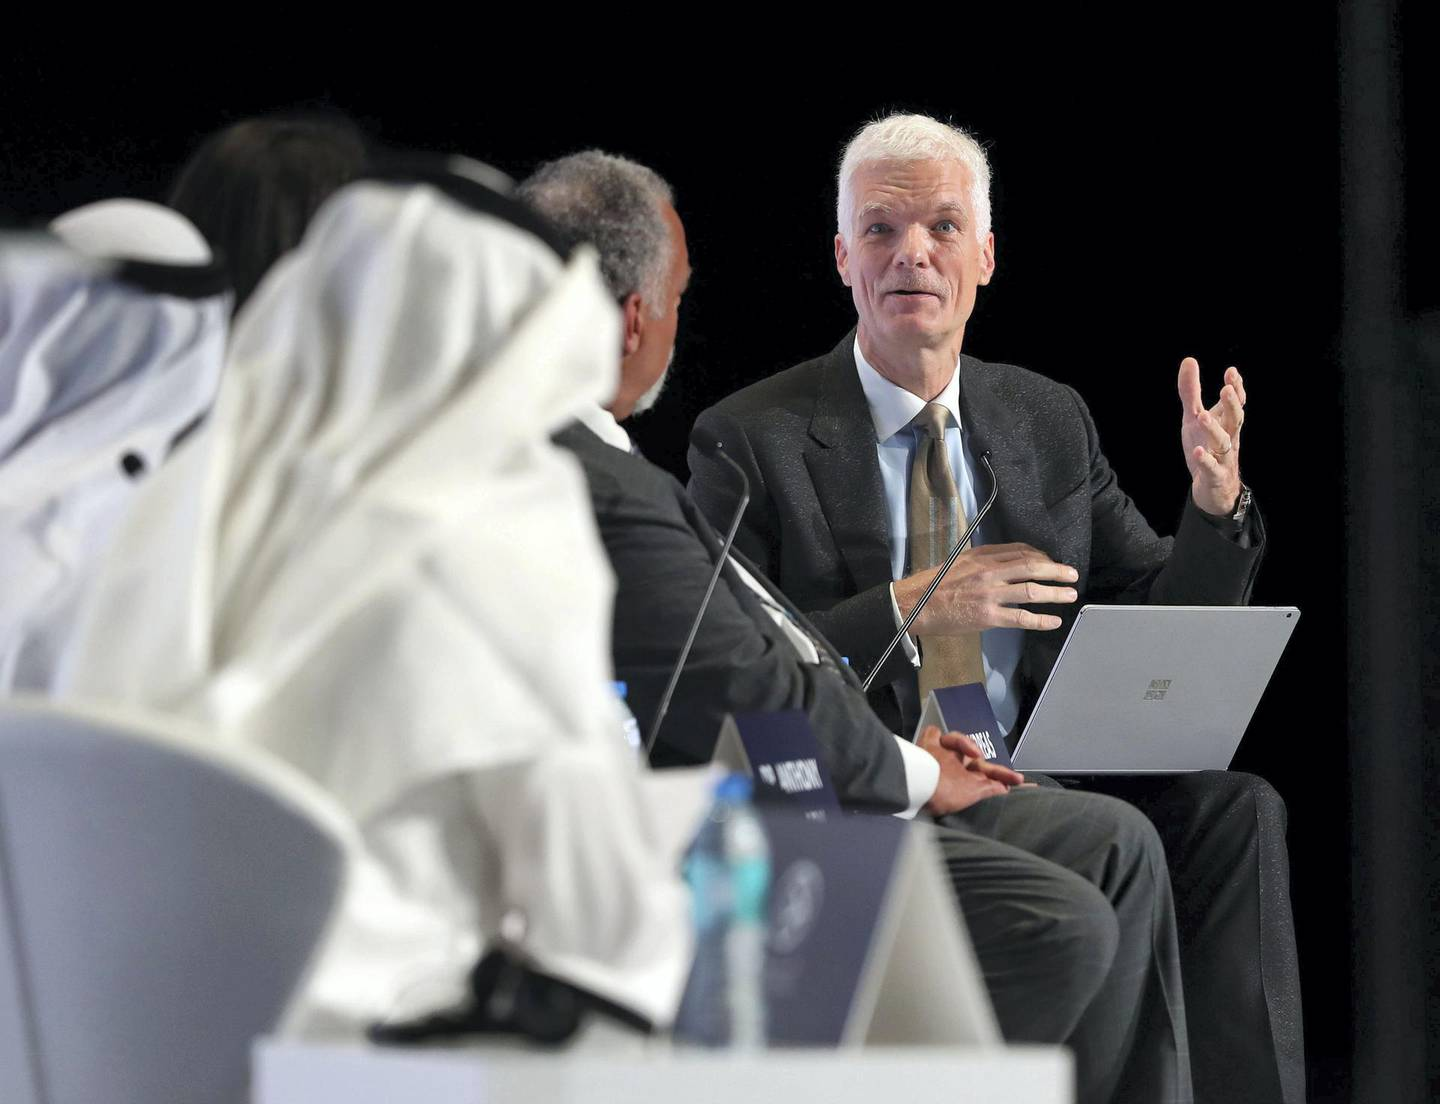 Abu Dhabi, United Arab Emirates - October 06, 2019: Andreas Schleicher, Director, Directorate of Education and Skills, OECD, France speaks in the opening plenary Teaching for Global Competence. Qudwa is a forum for teachers, by teachers that aims to elevate the teaching profession in the UAE. Sunday the 6th of October 2019. Manarat Al Saadiyat, Abu Dhabi. Chris Whiteoak / The National